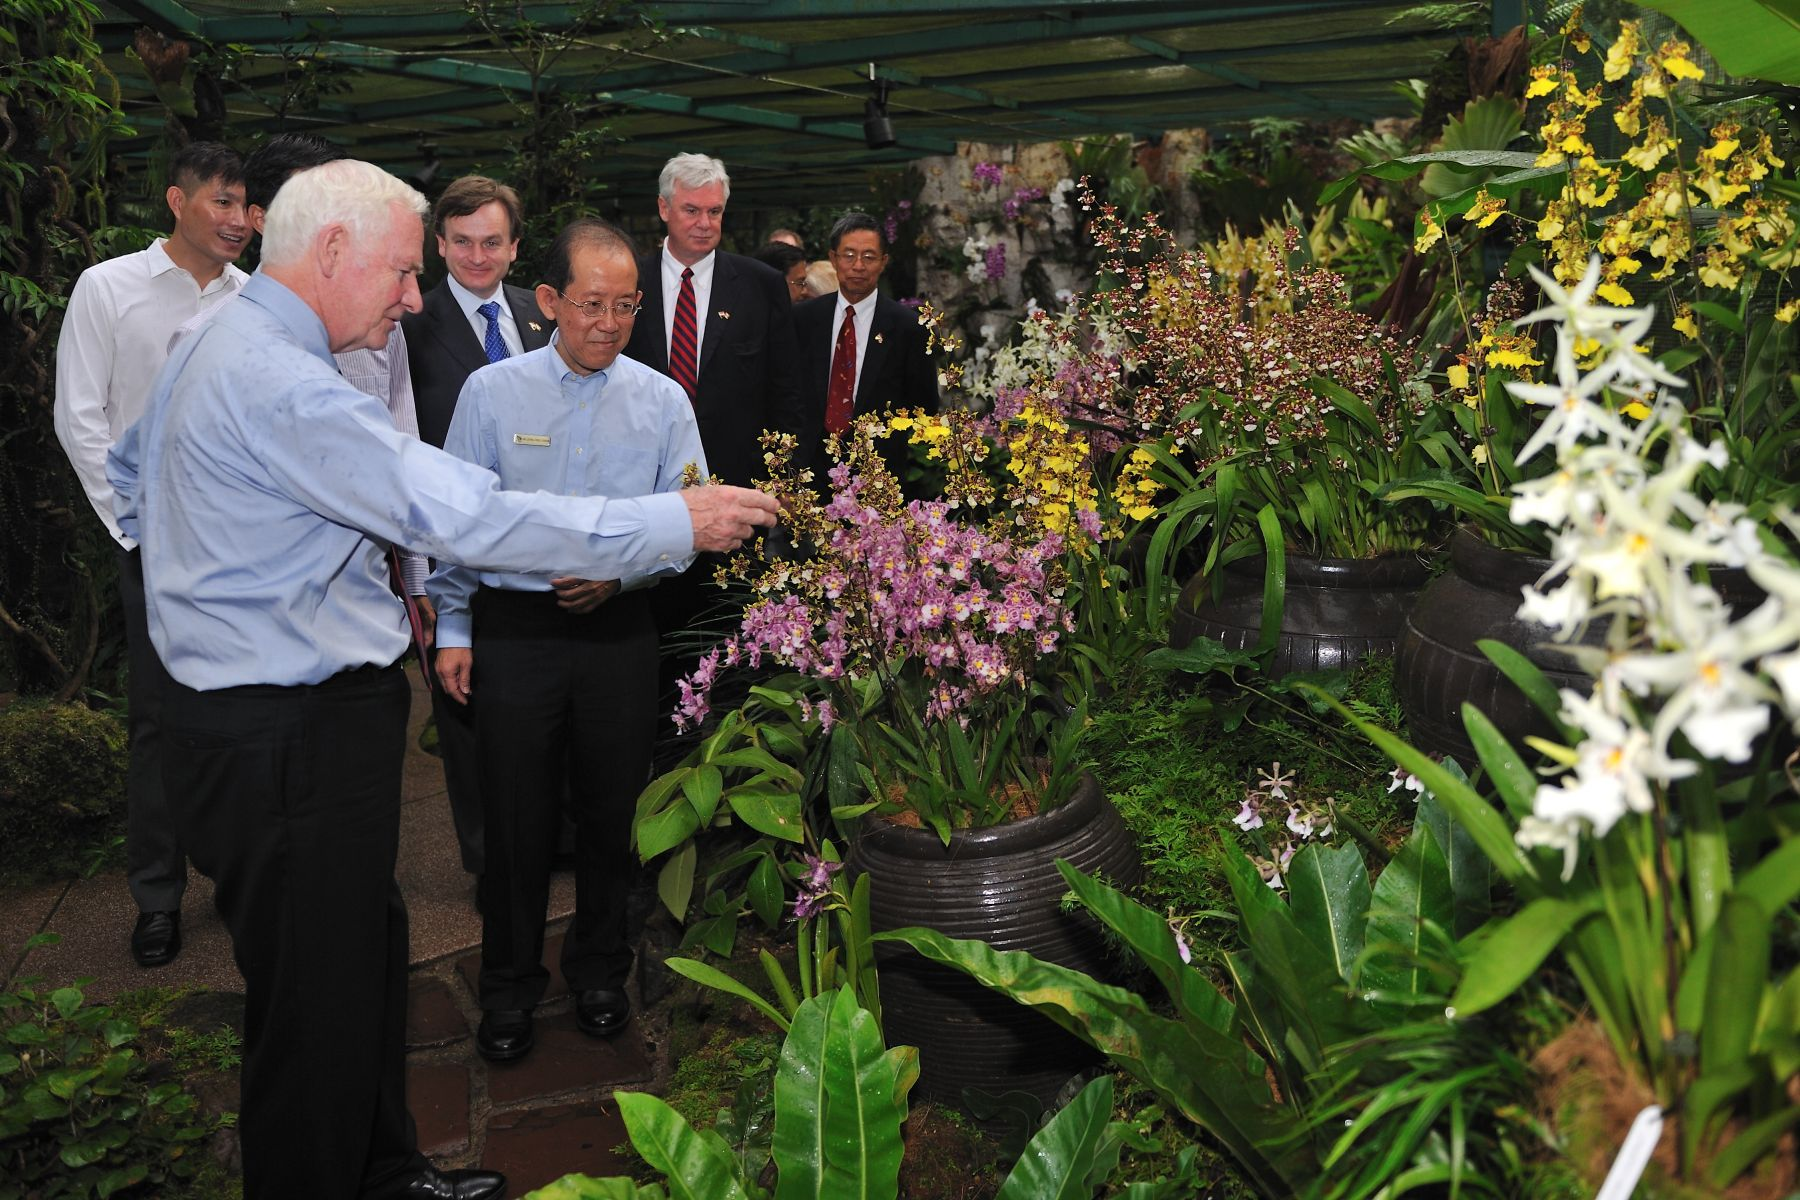 Following the orchid-naming ceremony, the Governor General and the Canadian delegates  toured Singapore's famed National Orchid Garden with Dr.Leong Chee Chiew, Deputy Chief Executive Officer and Commissioner of Parks and Recreation.